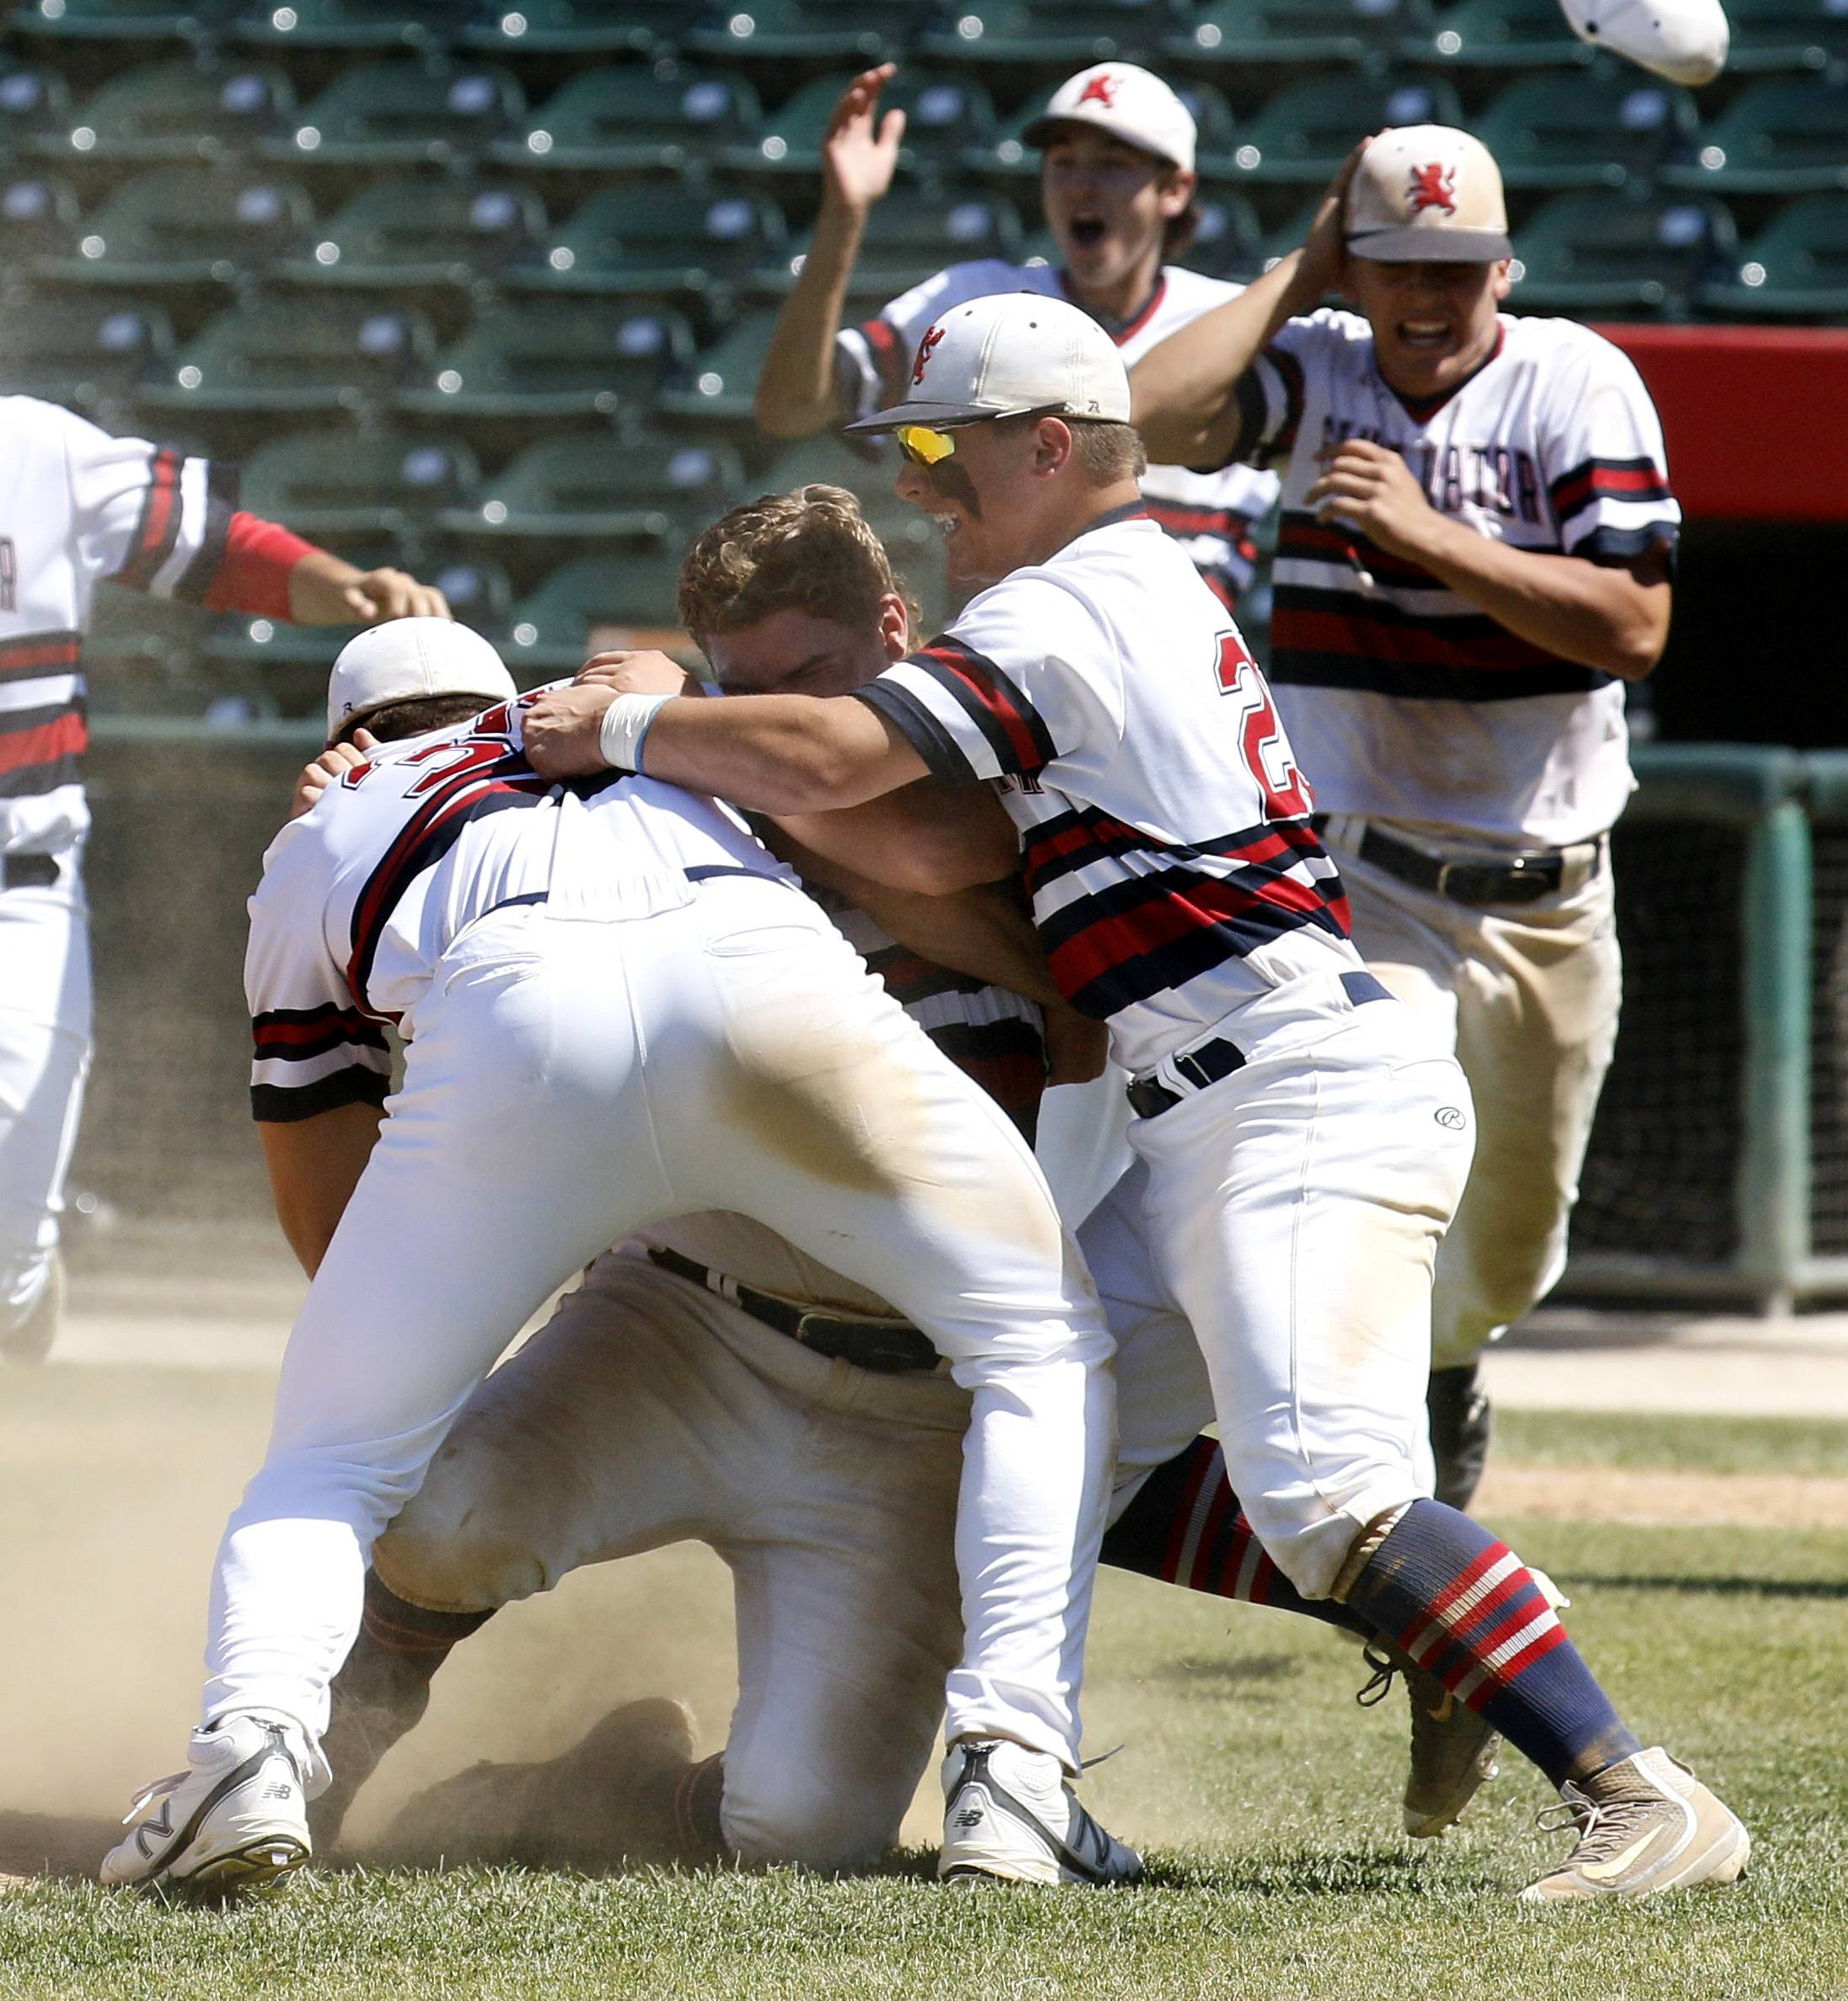 St. Viator players celebrate Class 3A state championship after a 10-8 win over Marian Catholic on Saturday in Joliet.